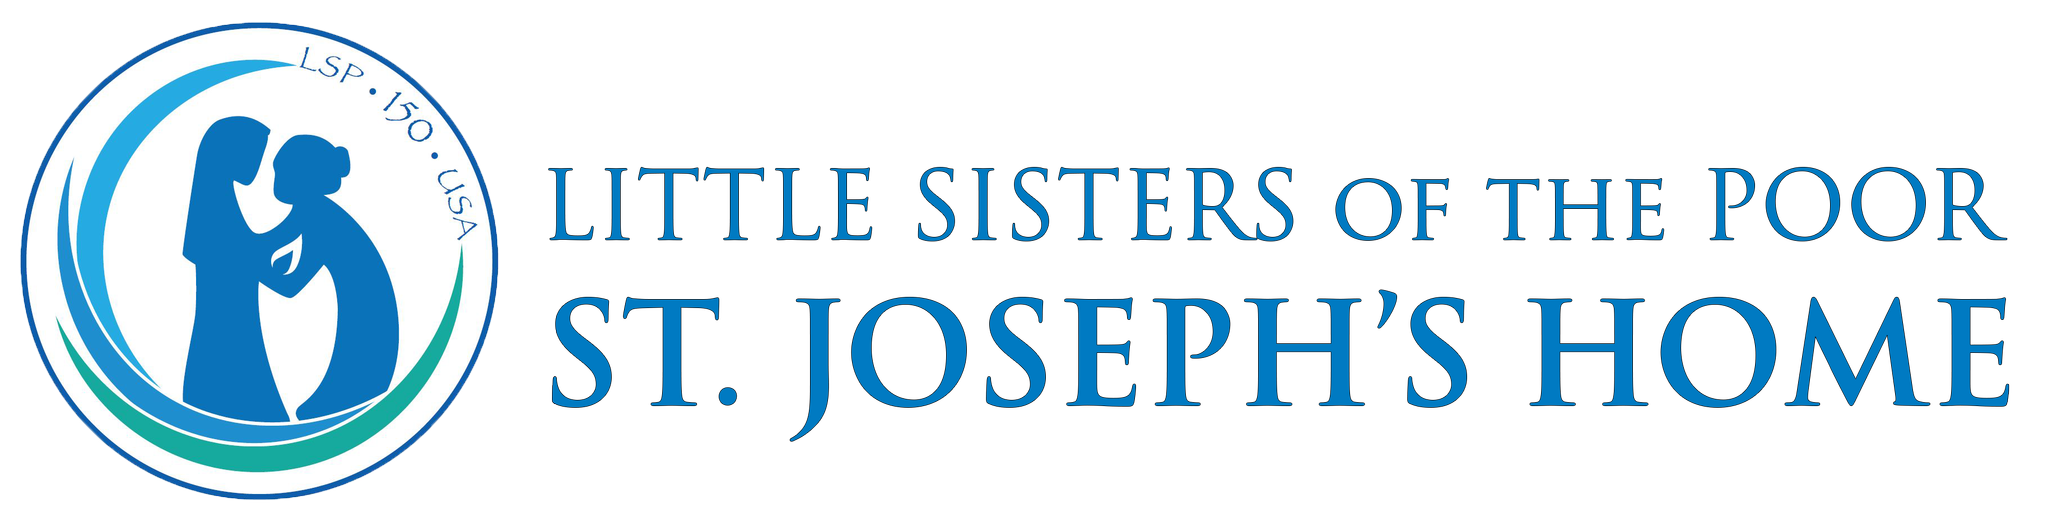 Little Sisters of the Poor Virginia